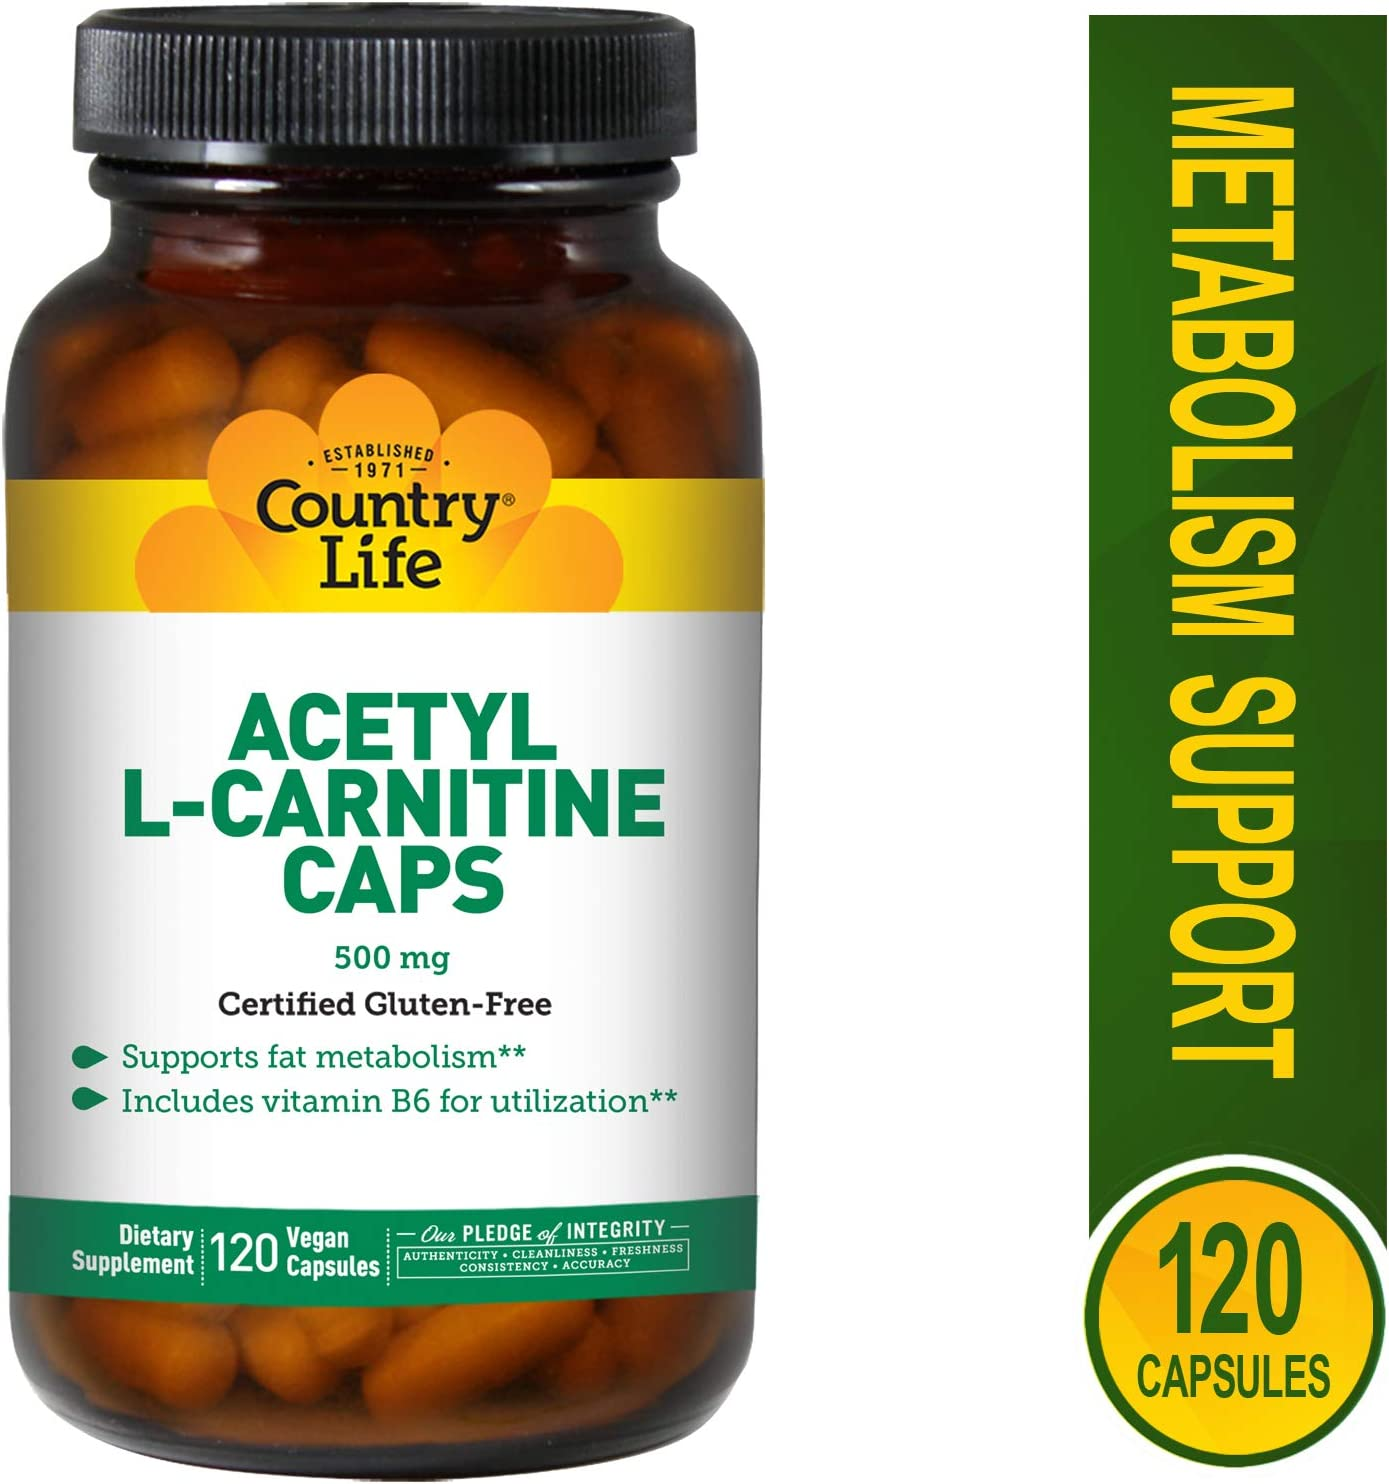 Country Life Acetyl L-Carnitine Caps – 120 Vegan Capsules – Supports Fat Metabolism – Vitamin B6 for Utilization